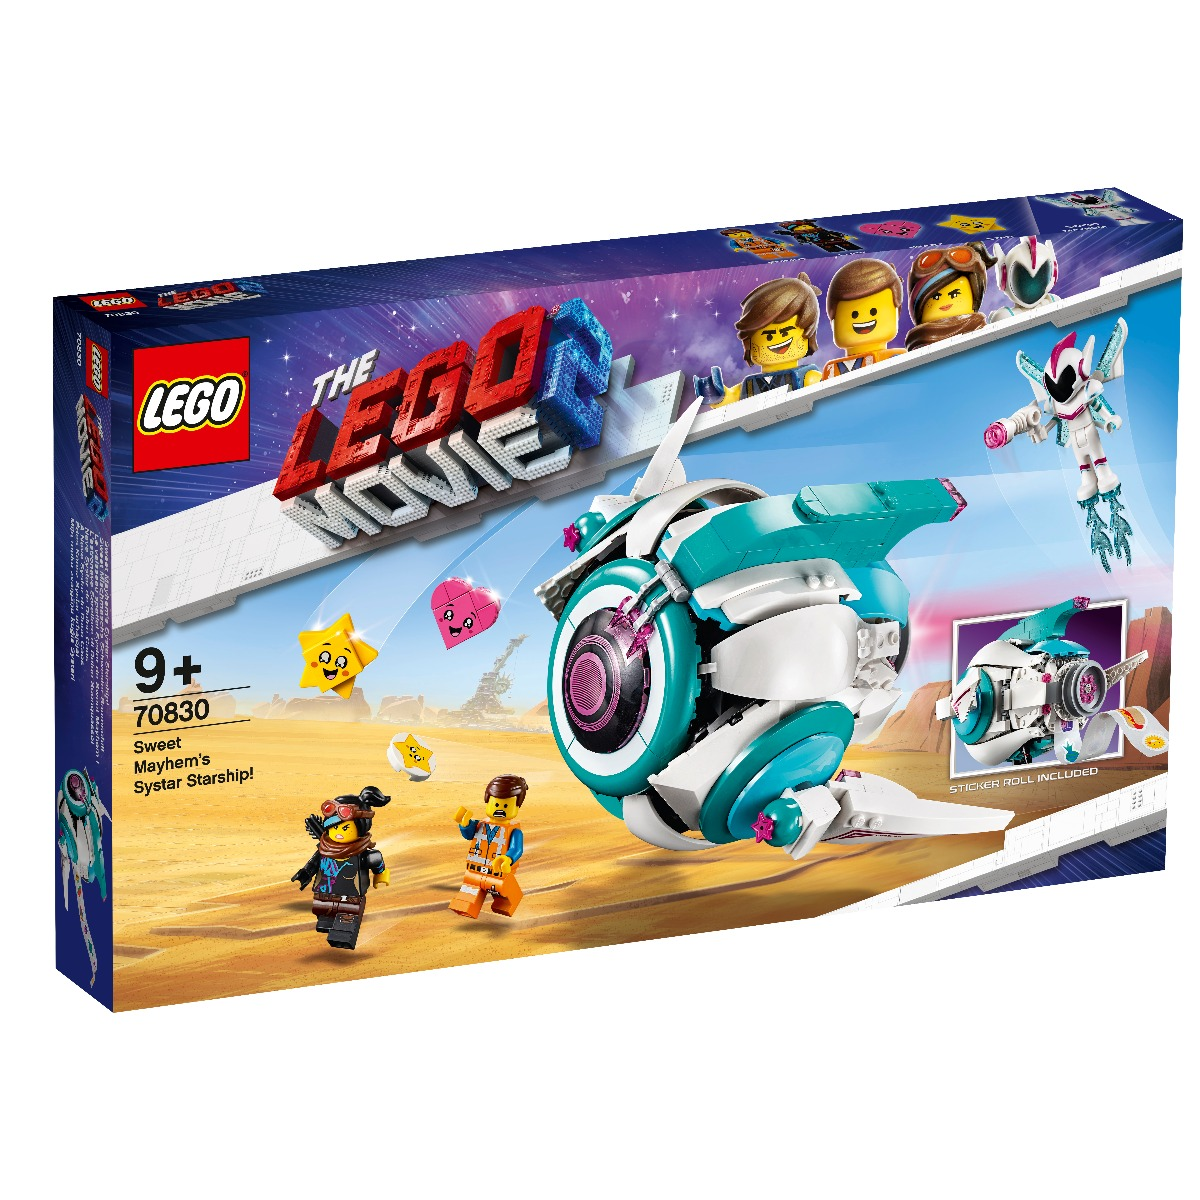 LEGO® Movie - Nava stelara Systar a lui Mayhem (70830)